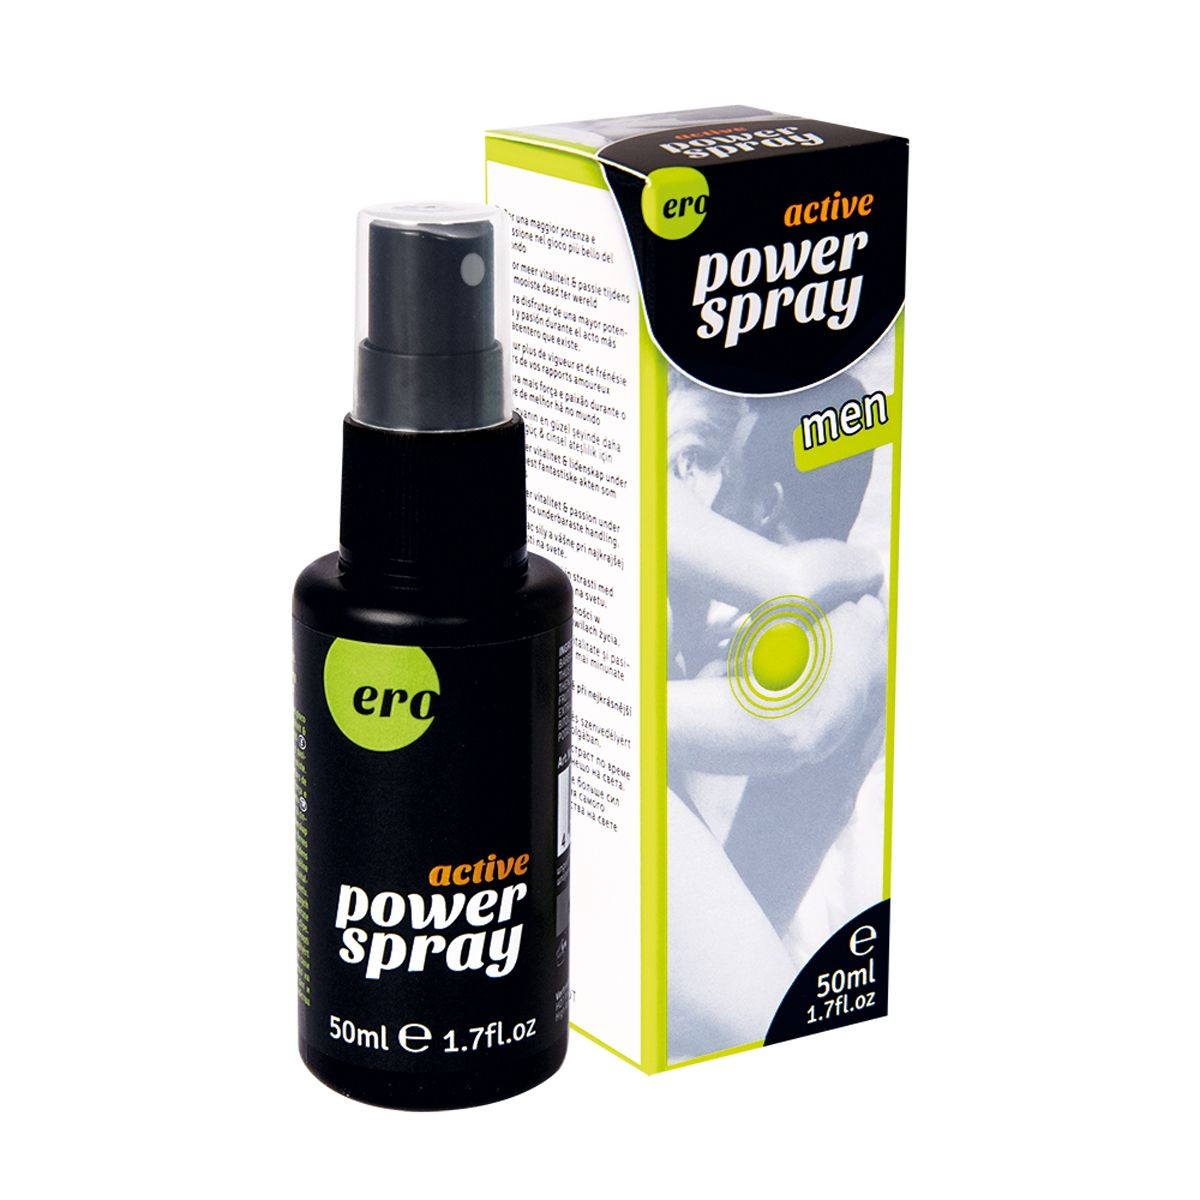 Active Power Spray